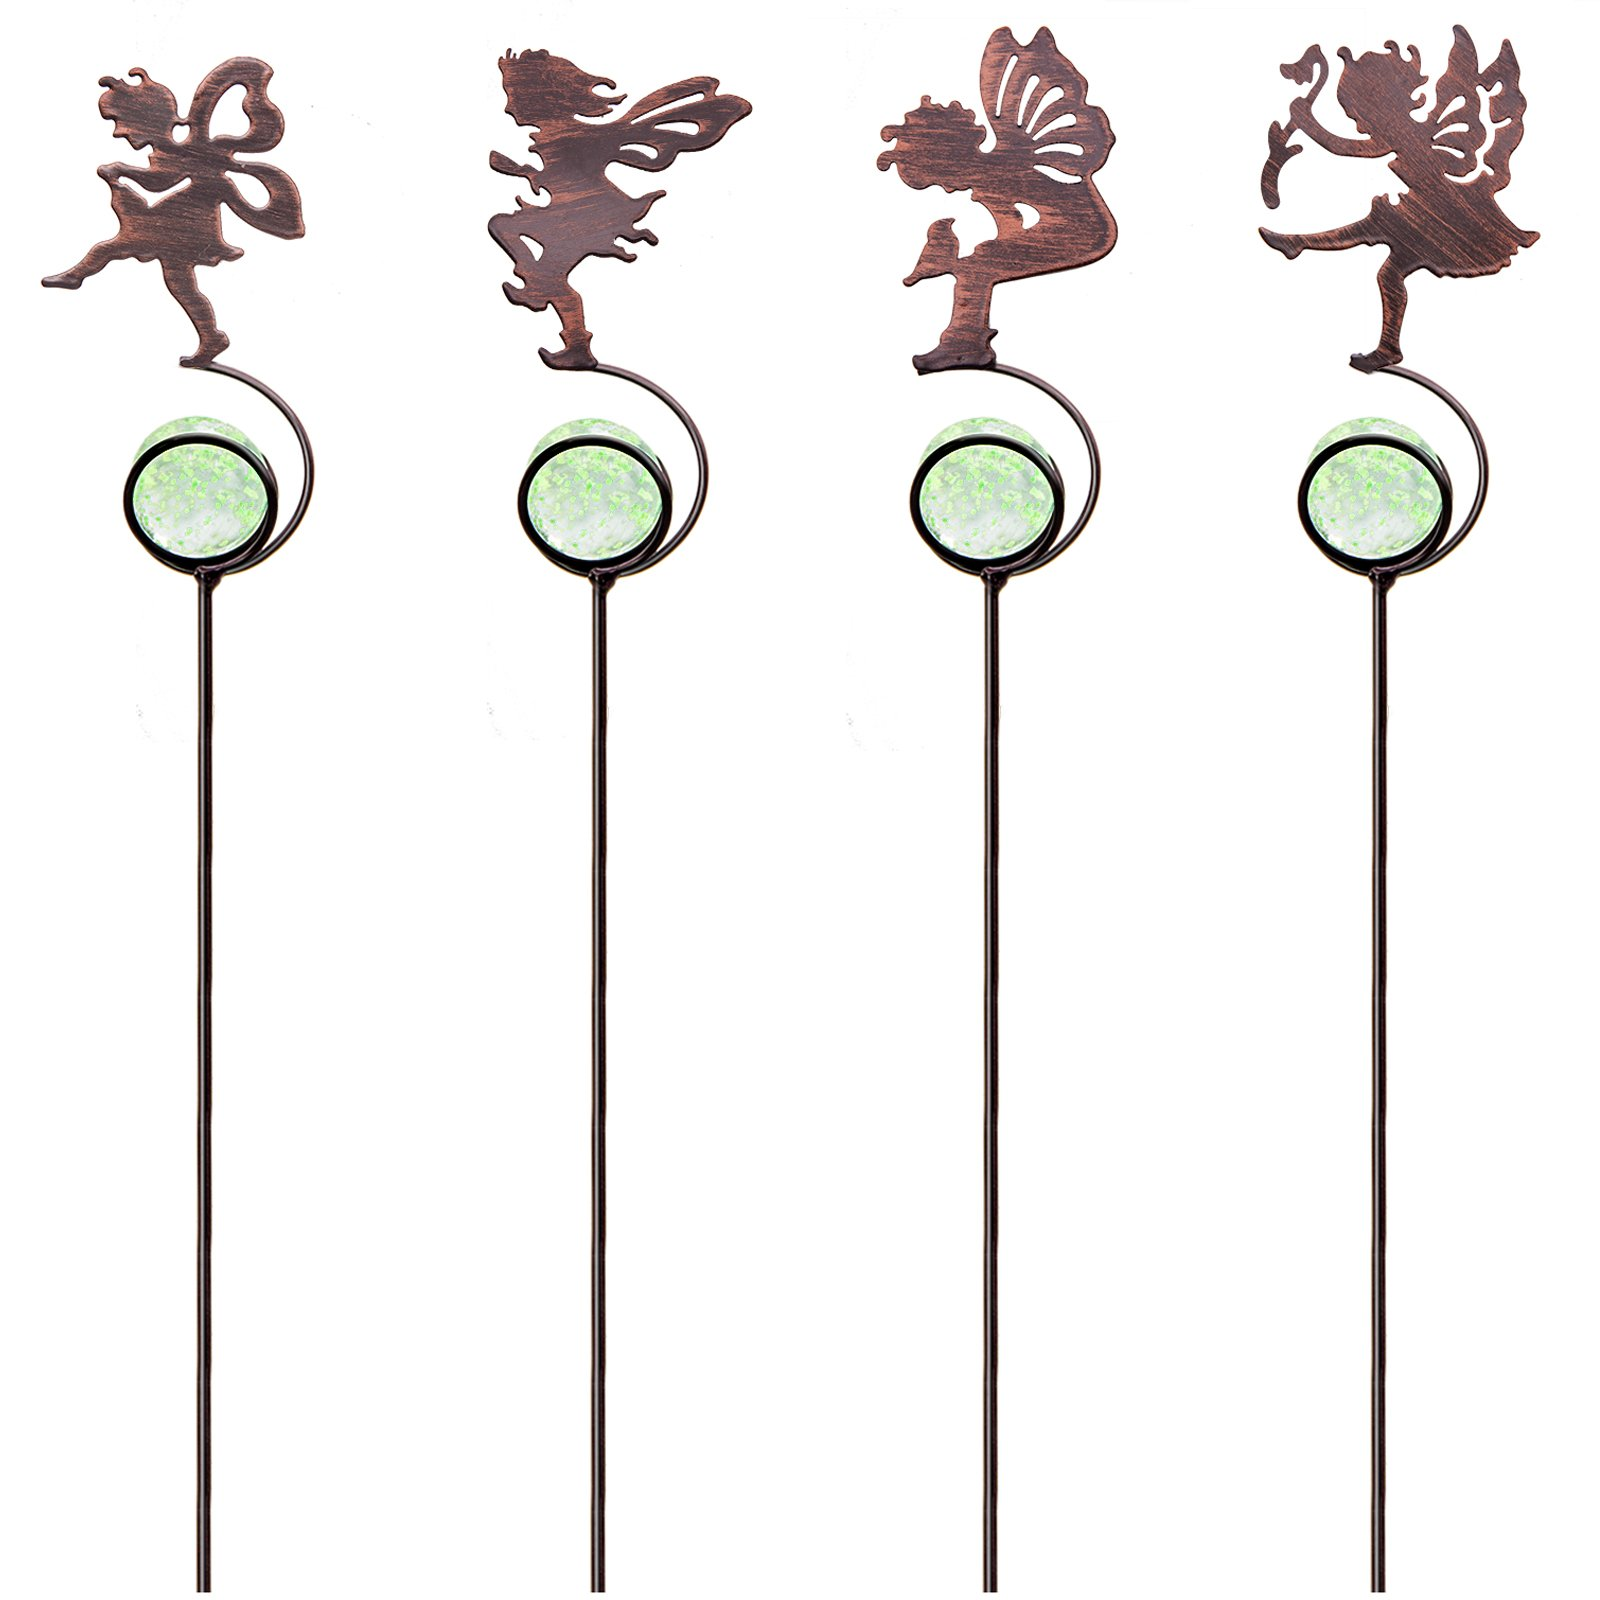 CREATIVE DESIGN Garden Stakes, 4 Pack Fairy Garden Stakes, Metal Mini Garden Stake with Glass Ball for Outdoor Yard, Plant Pots and Garden Décor (13.5'' height)